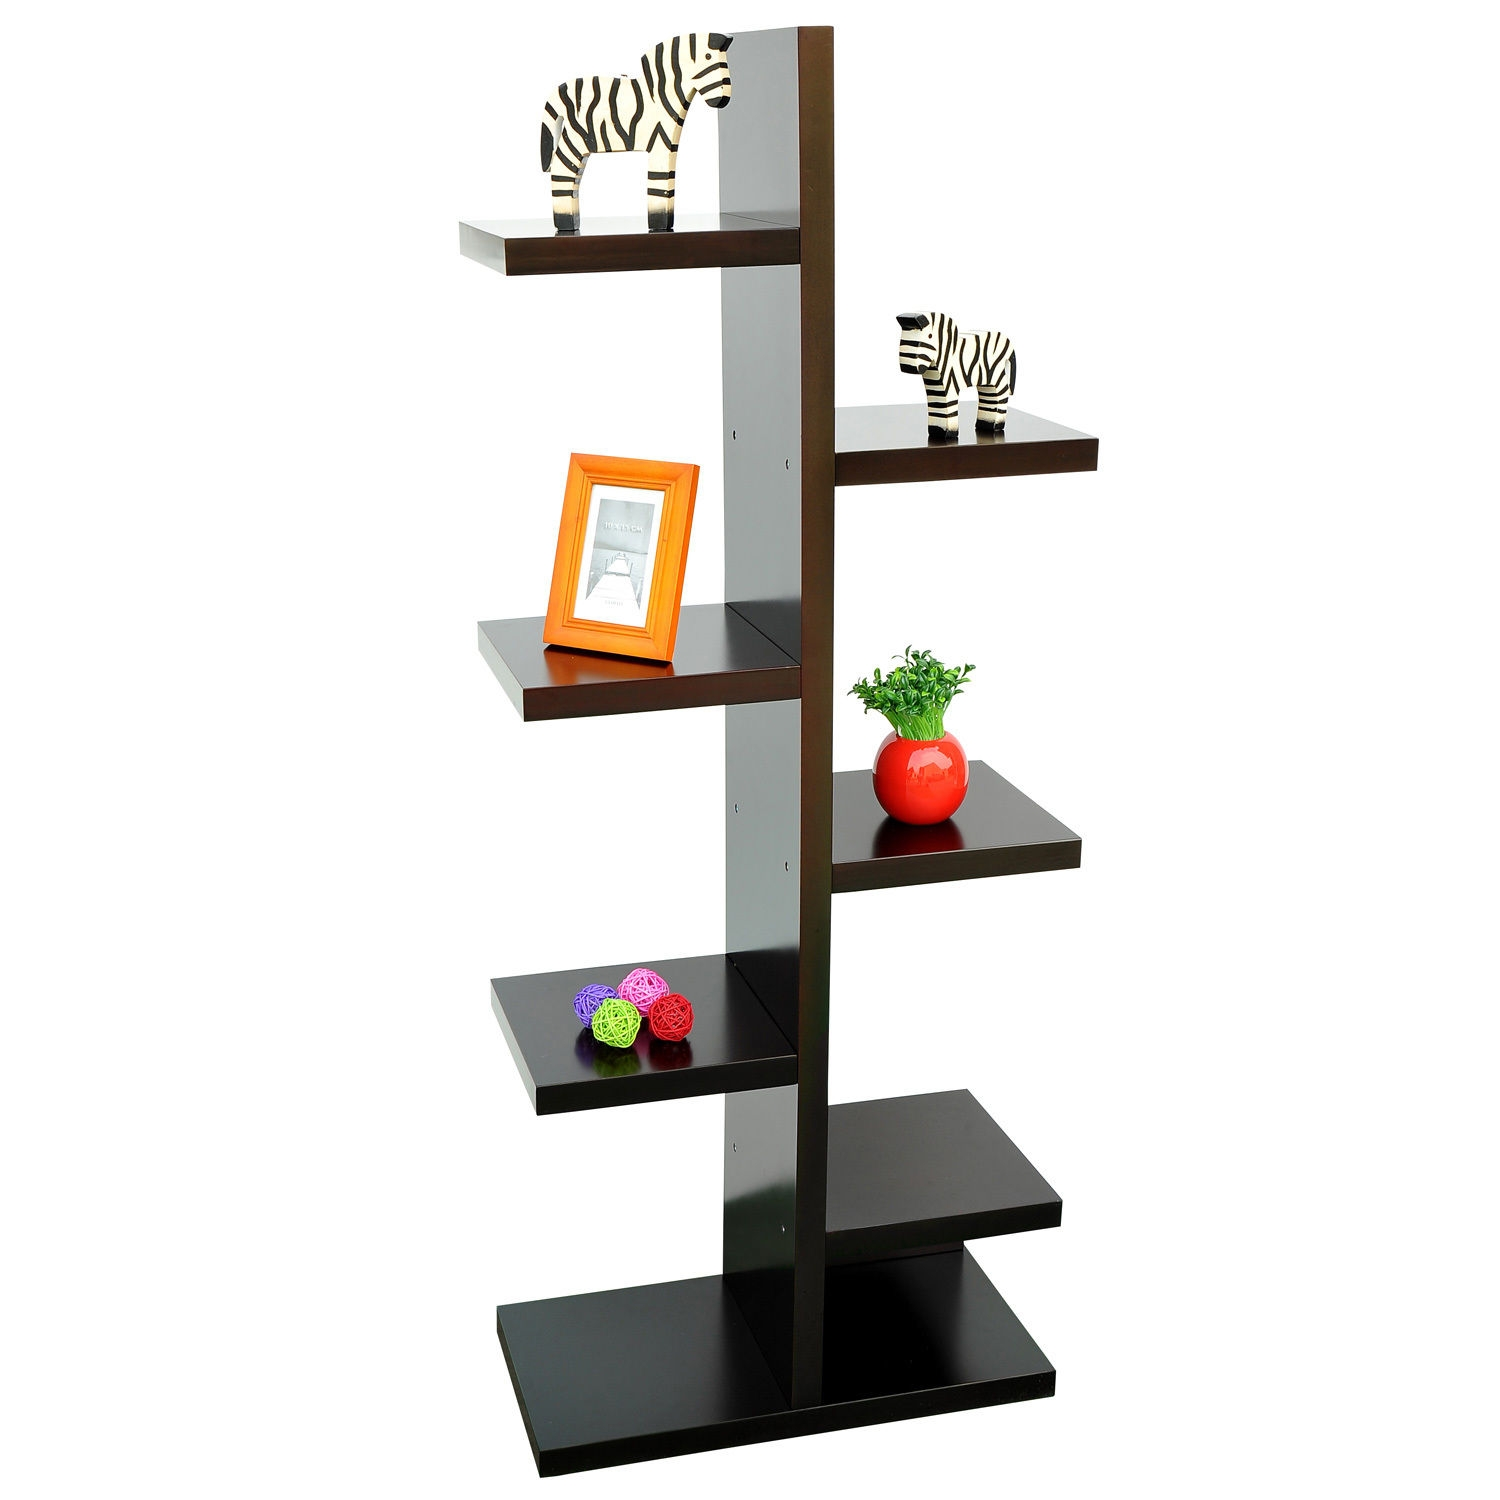 15 collection of free standing book shelf